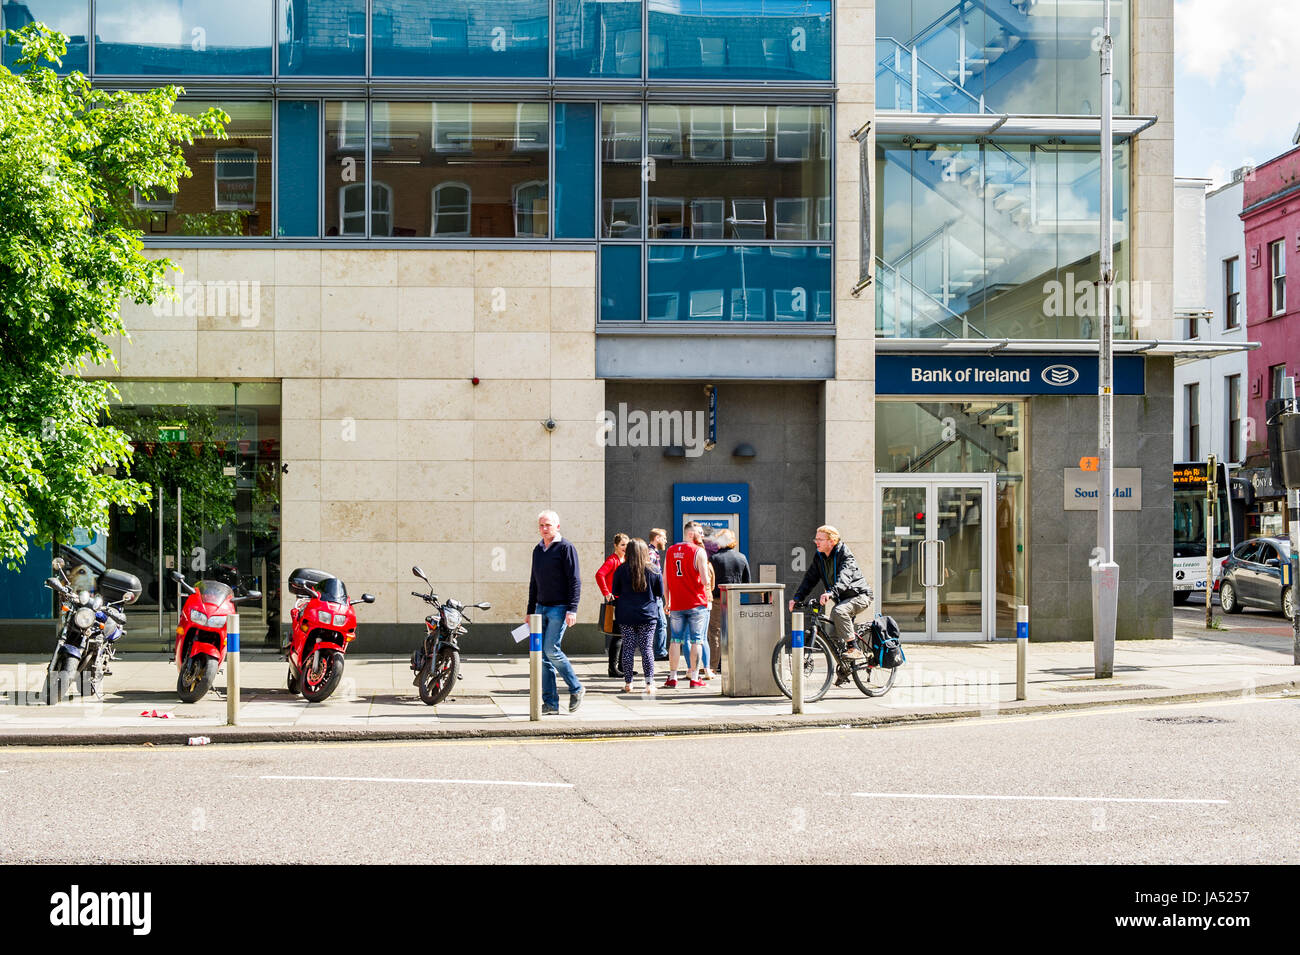 People queuing at a Bank of Ireland ATM on South Mall, Cork, Ireland. - Stock Image